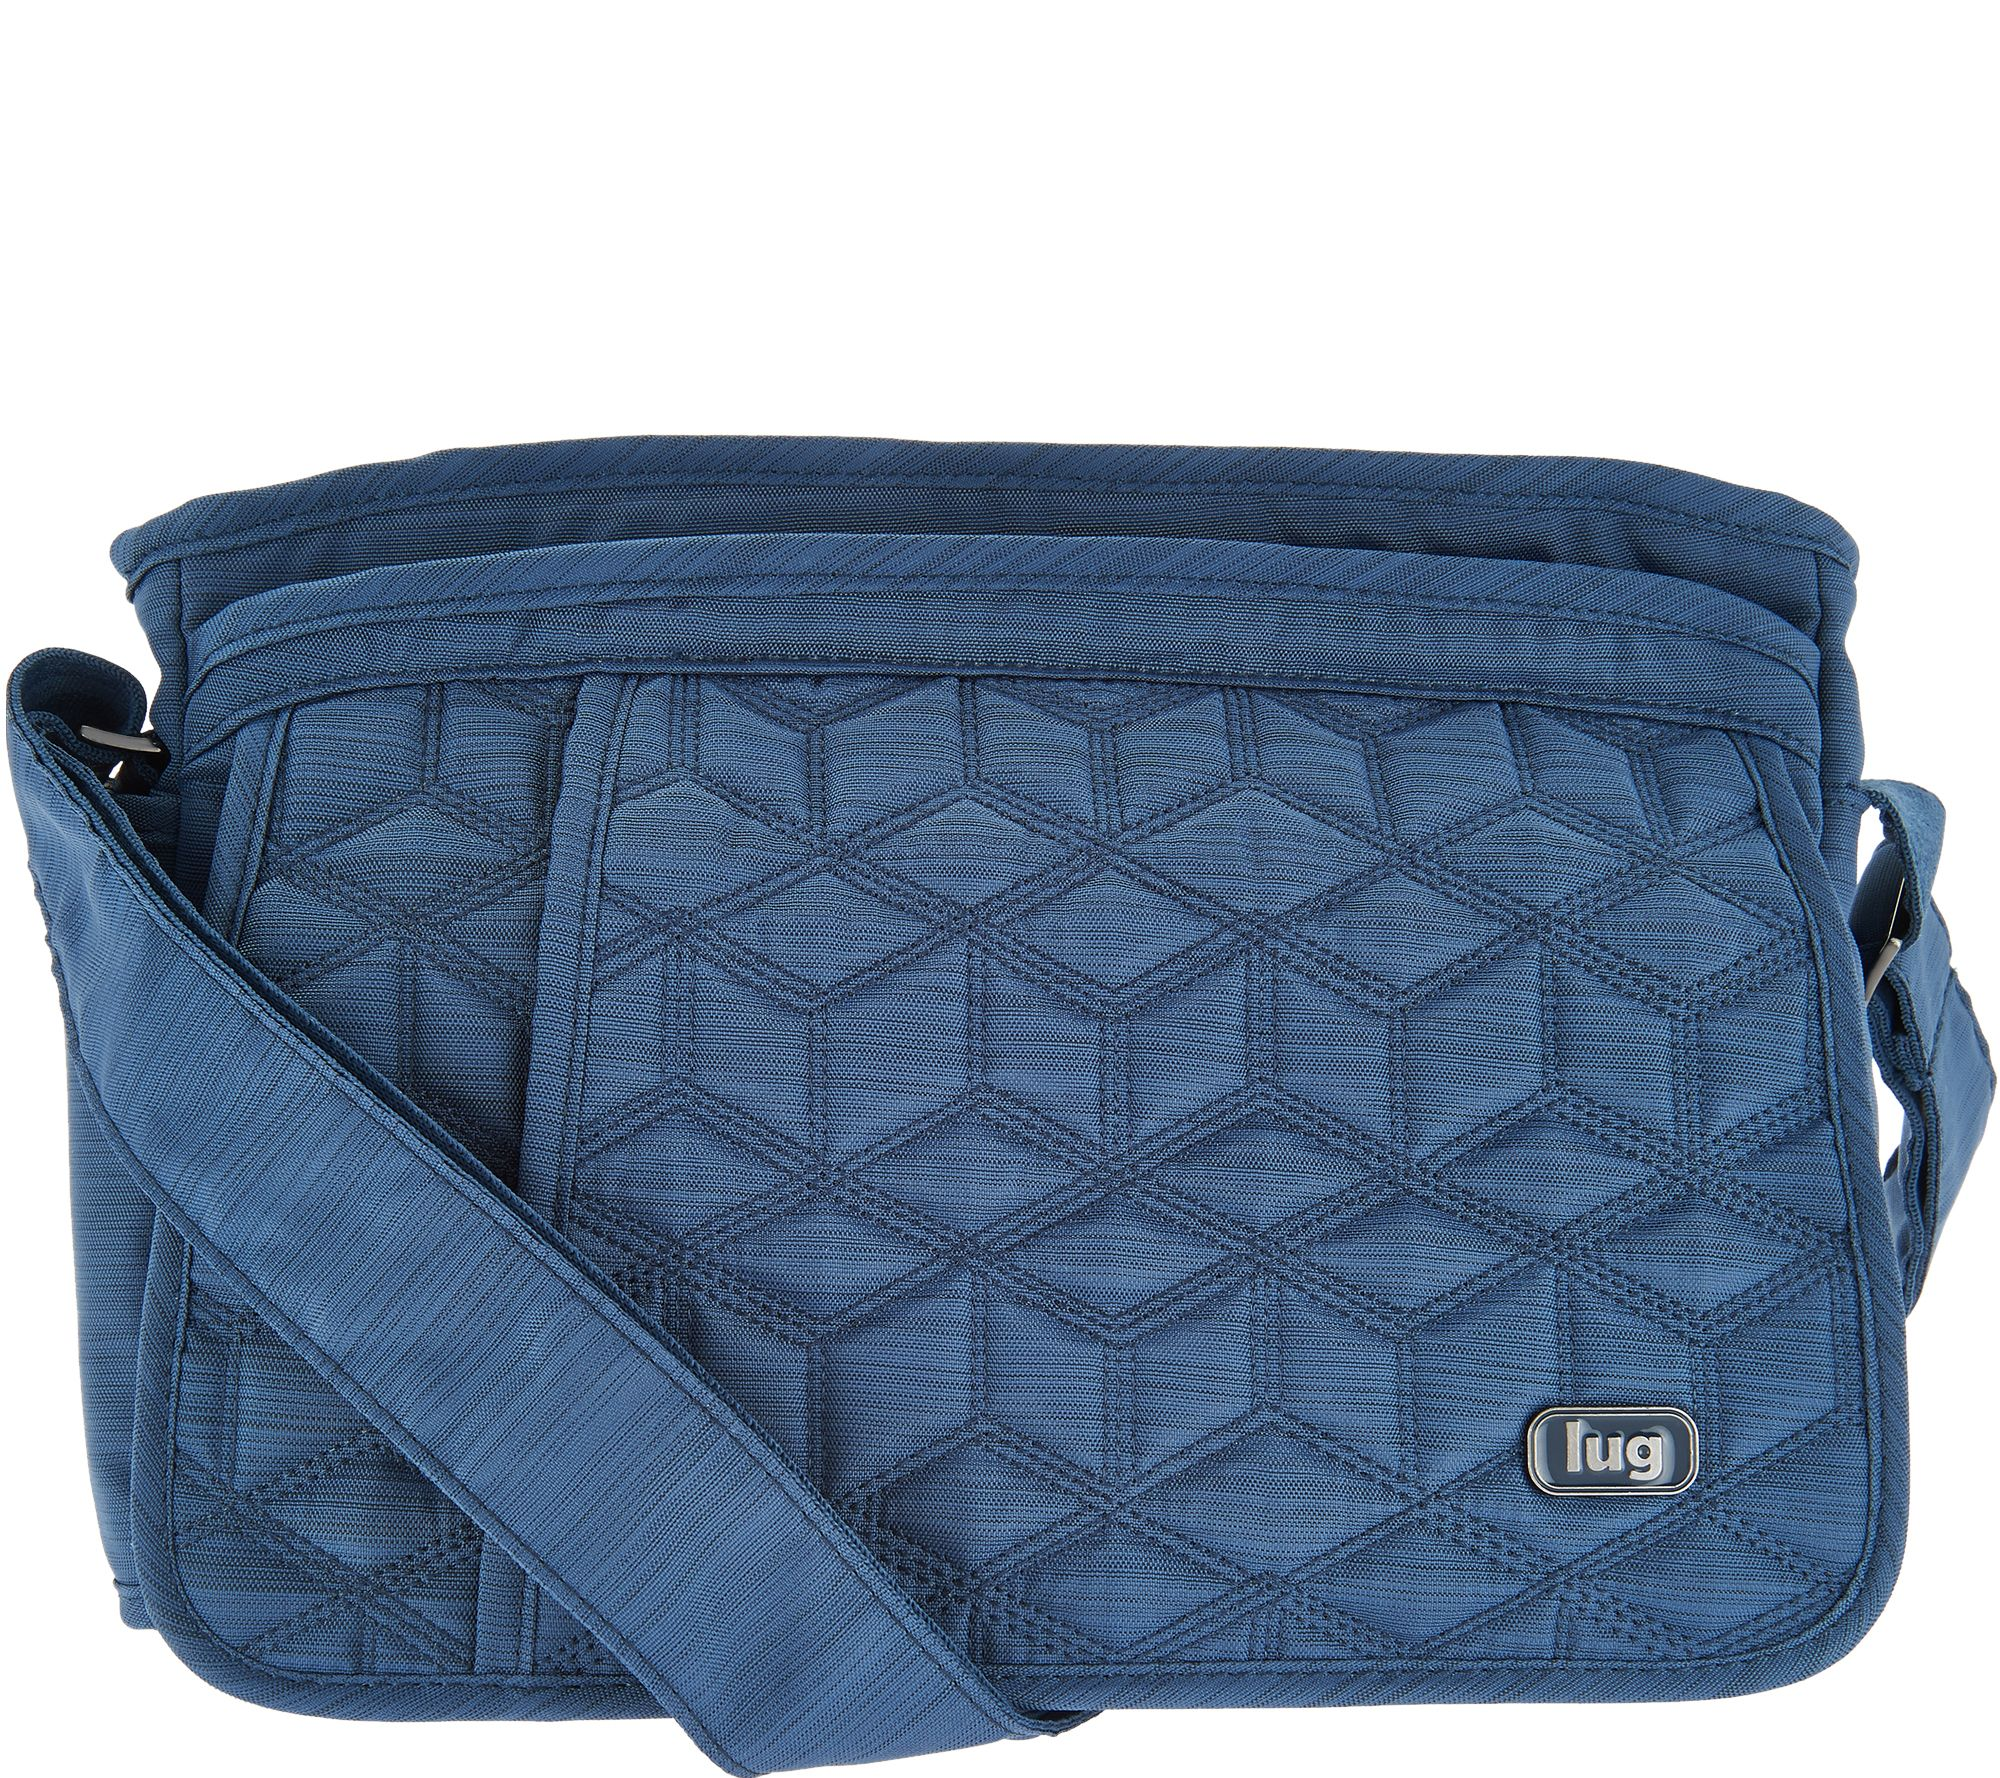 Lug Quilted Flap Crossbody Bag - Wings - Page 1 — QVC.com